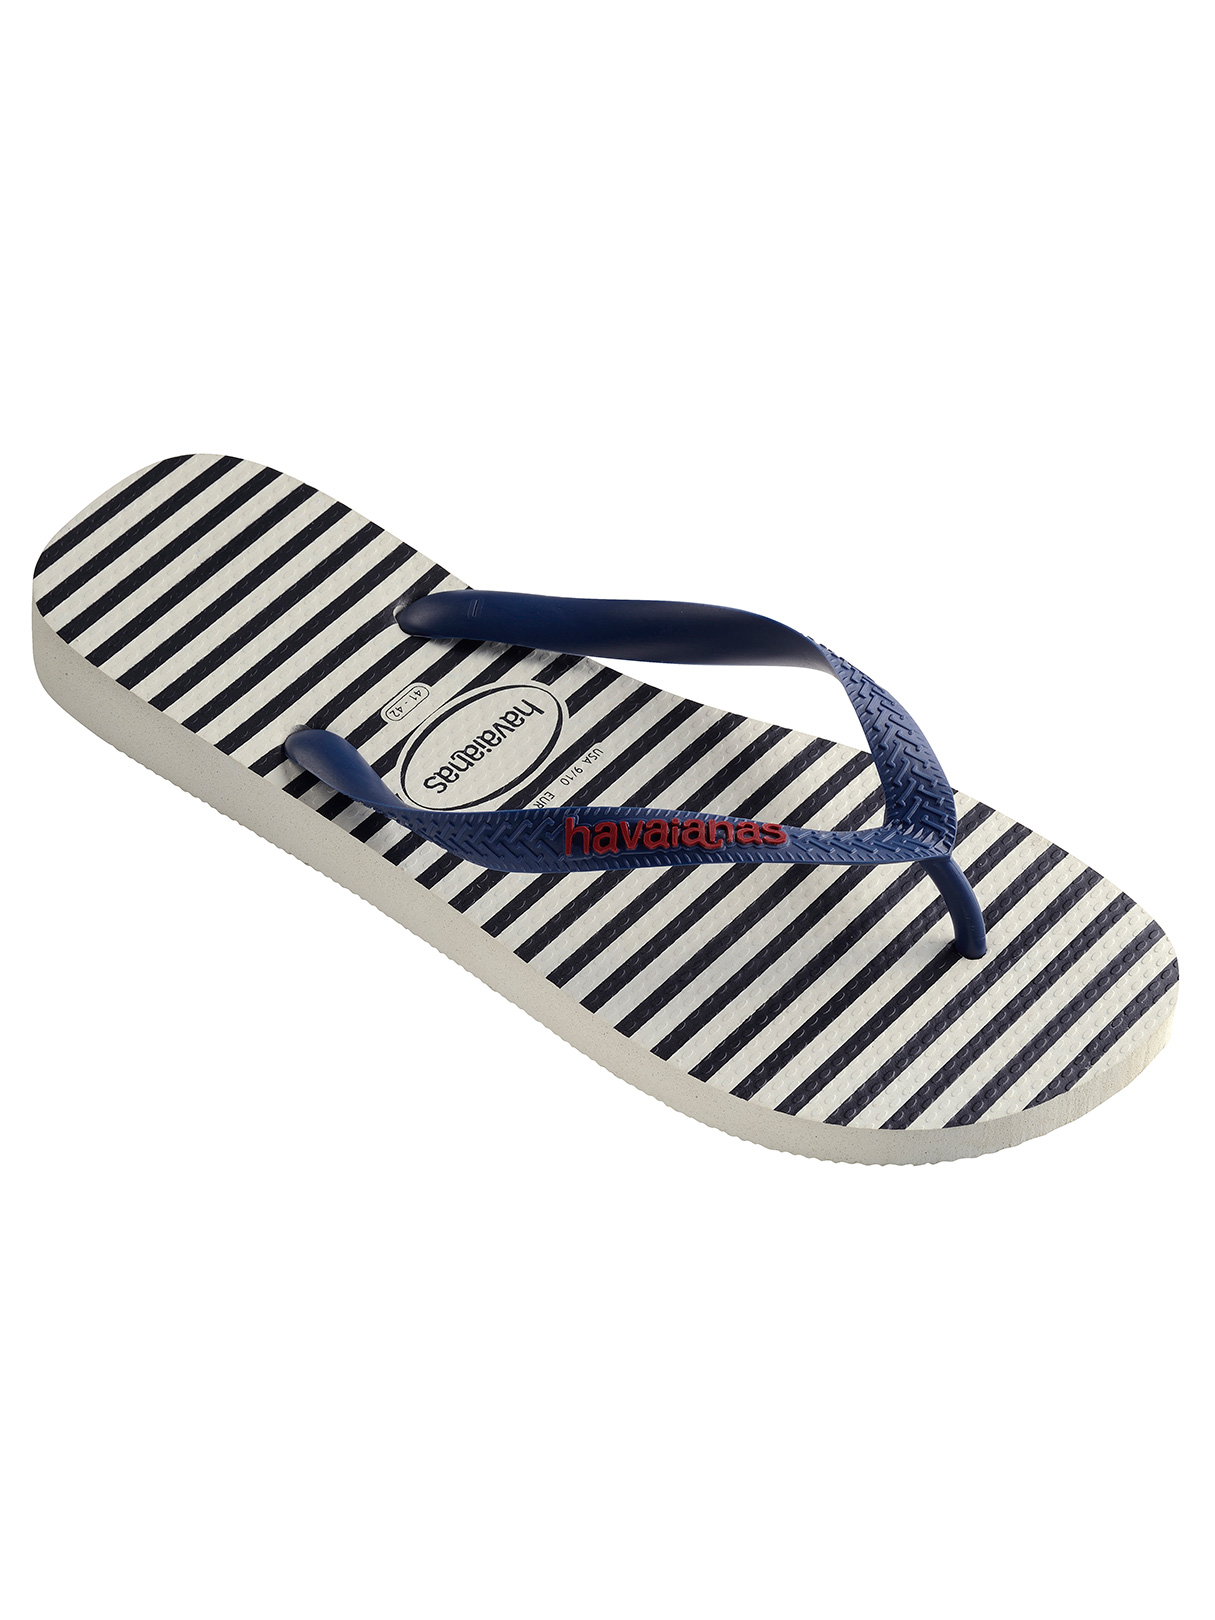 Havaianas White/Navy Top Nautical Flip Flops